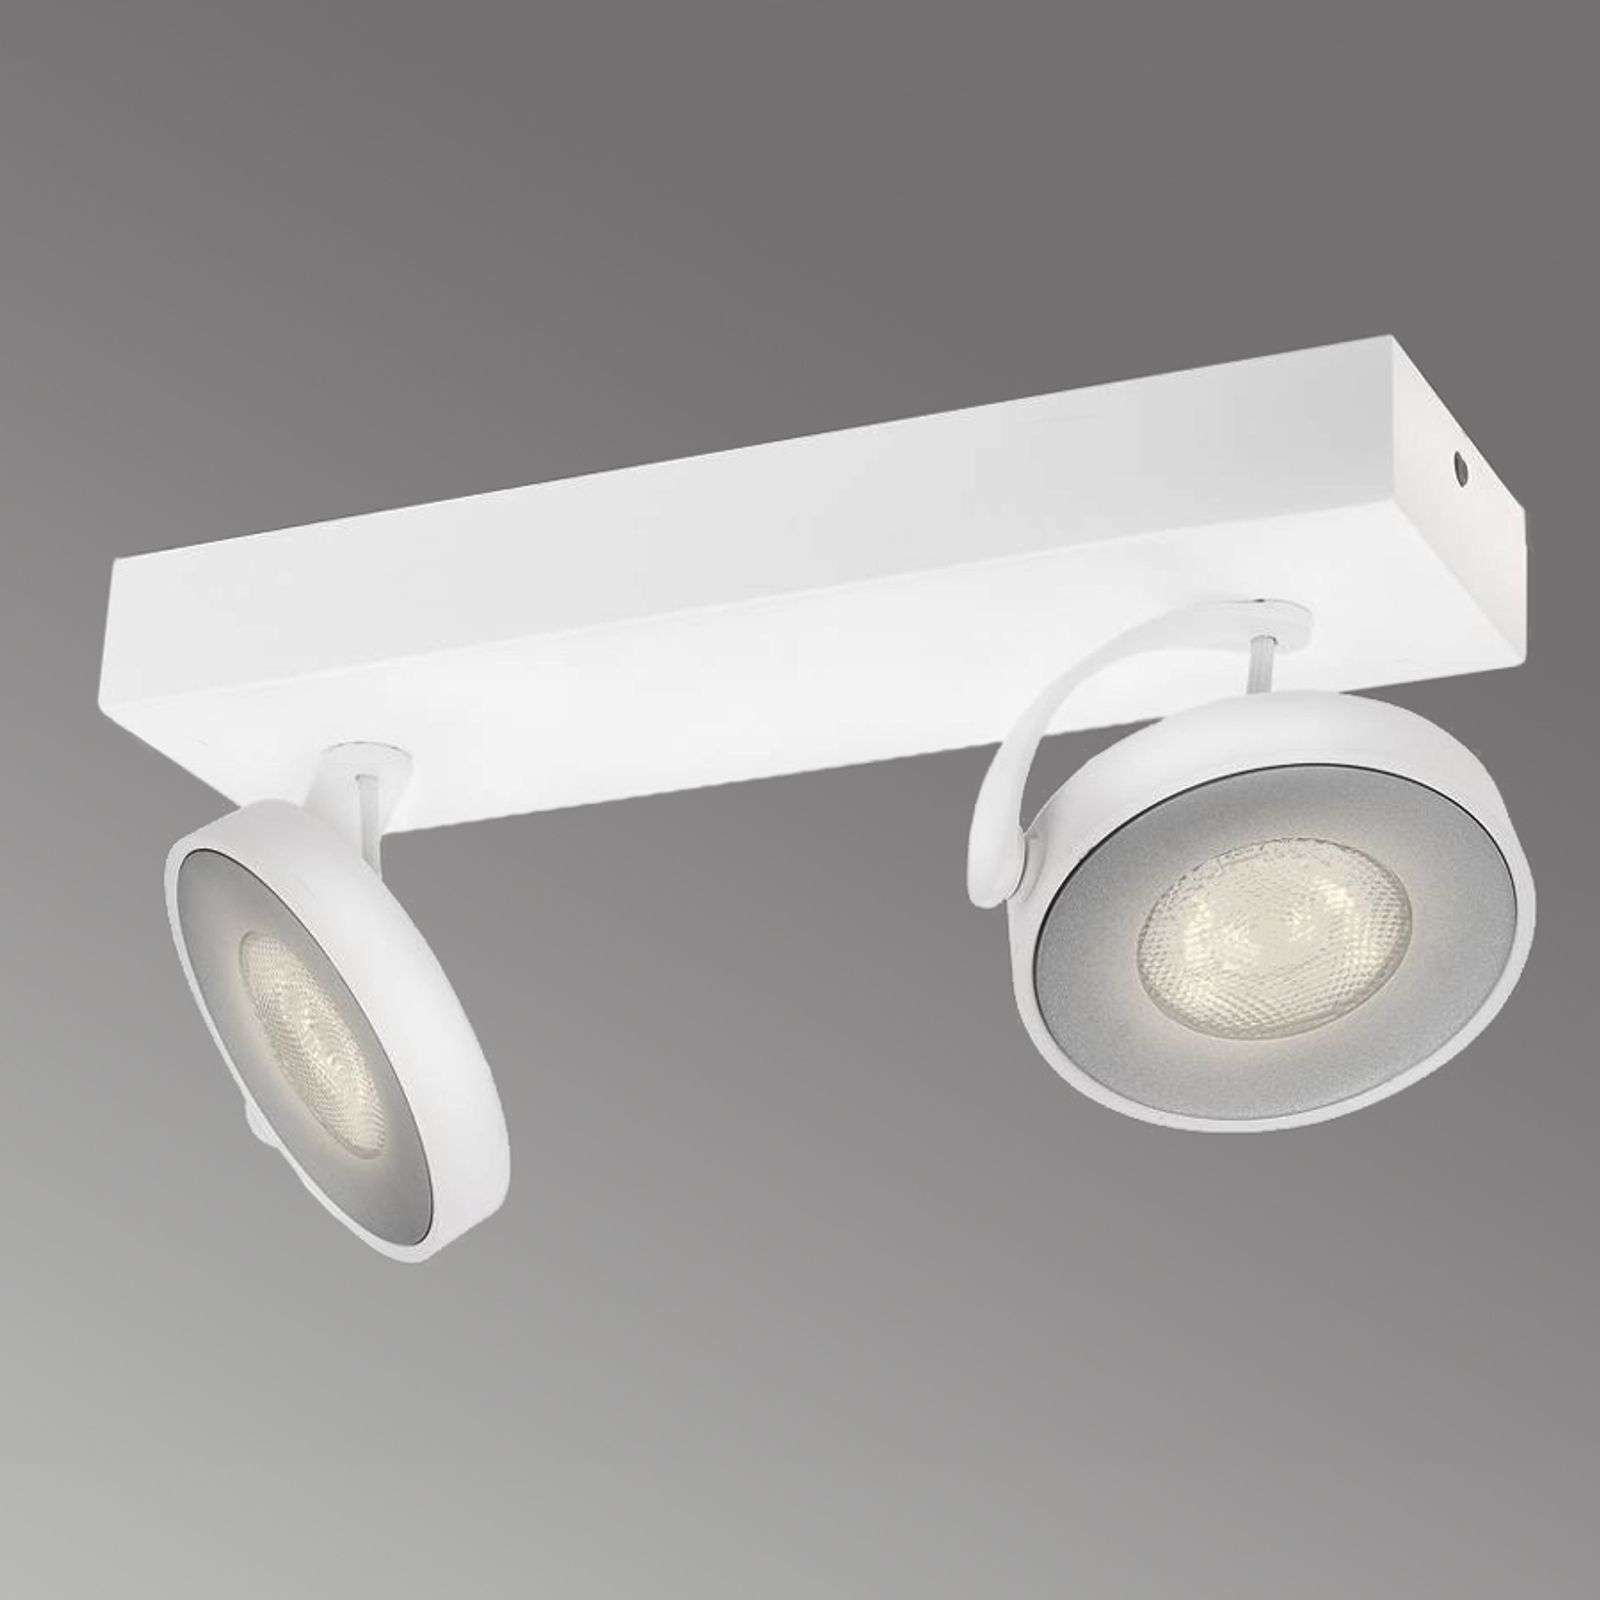 Foco LED Clockwork de 2 brazos en color blanco